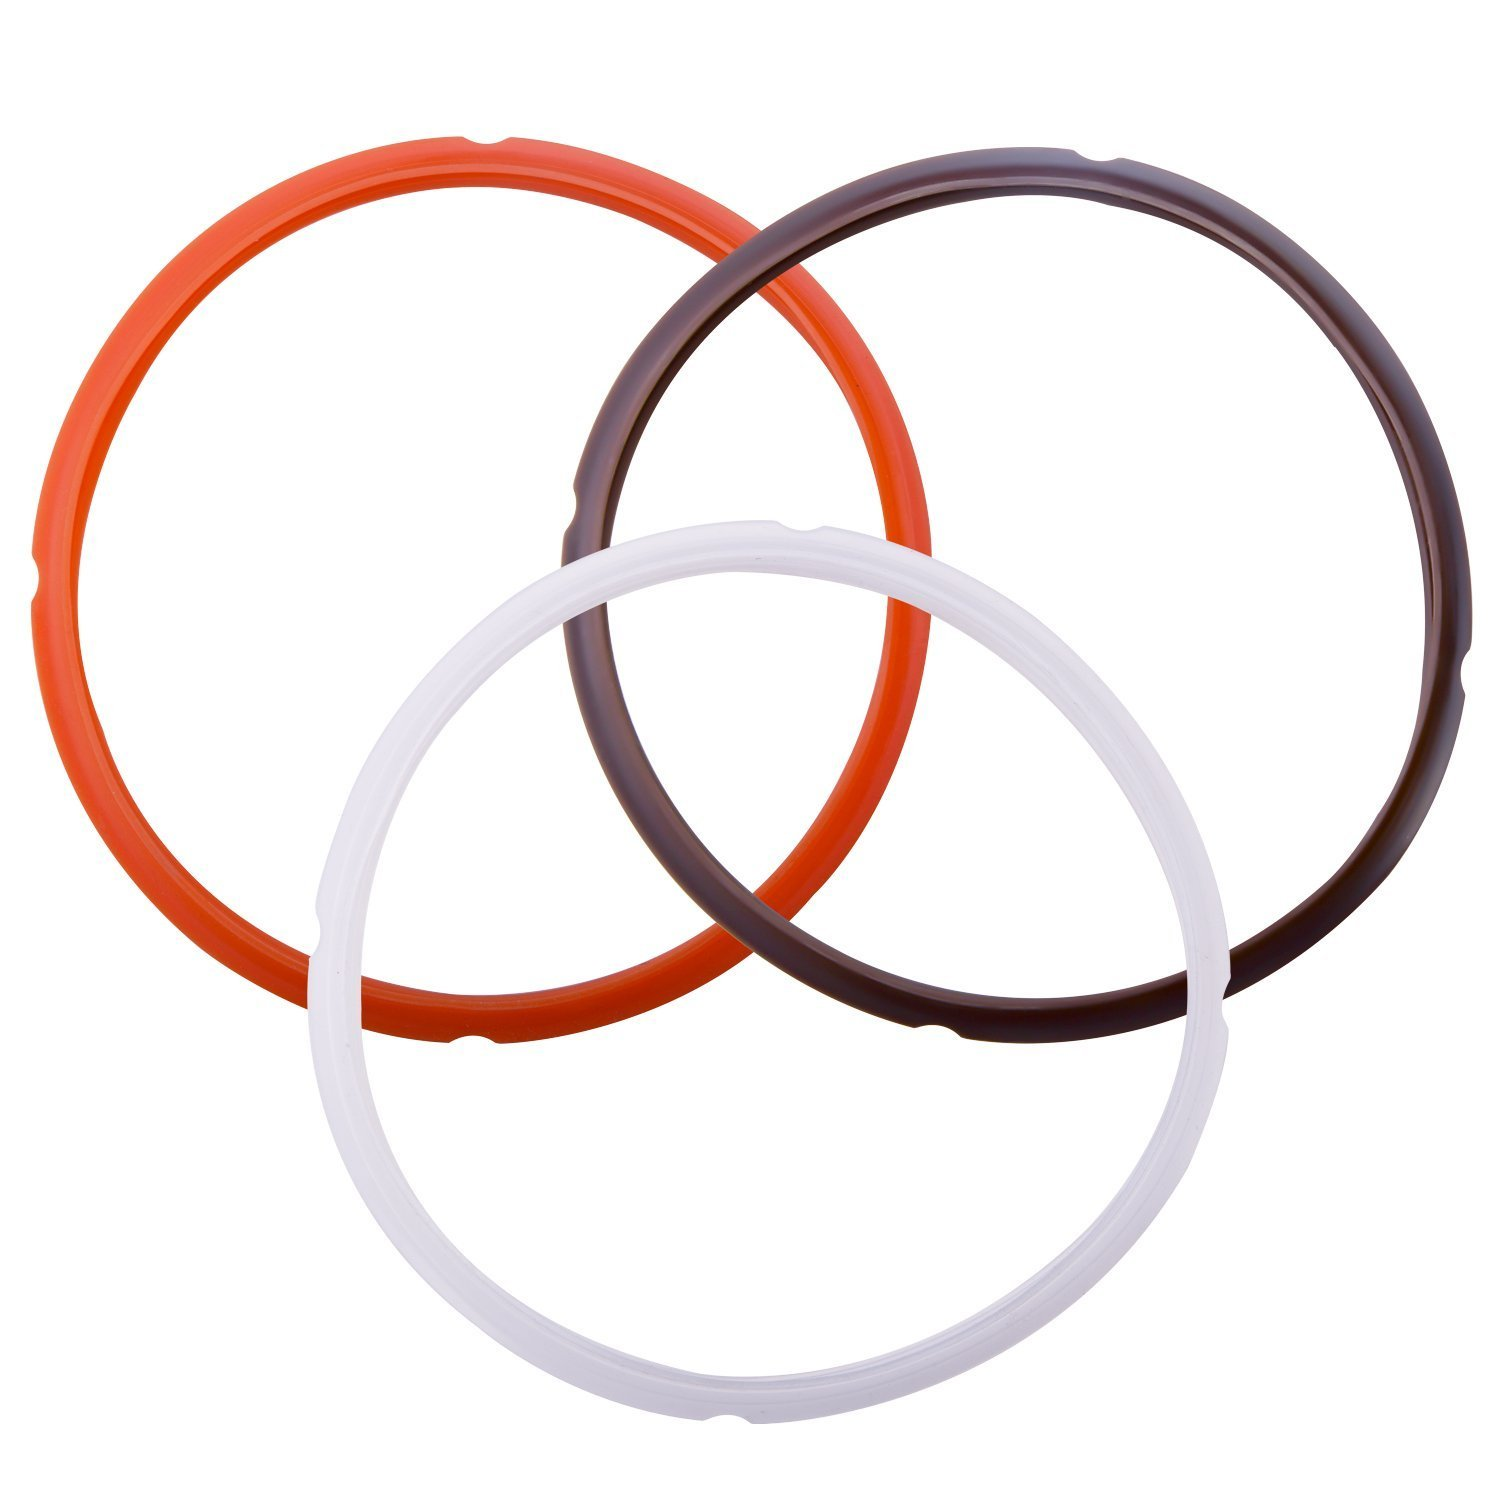 Silicone Sealing Ring for Instant Pot Accessories - Fits 5 or 6 Quart Models, Orange, Brown and Common Transparent White, Sweet and Savory Edition Pack of 3 Netany a-001